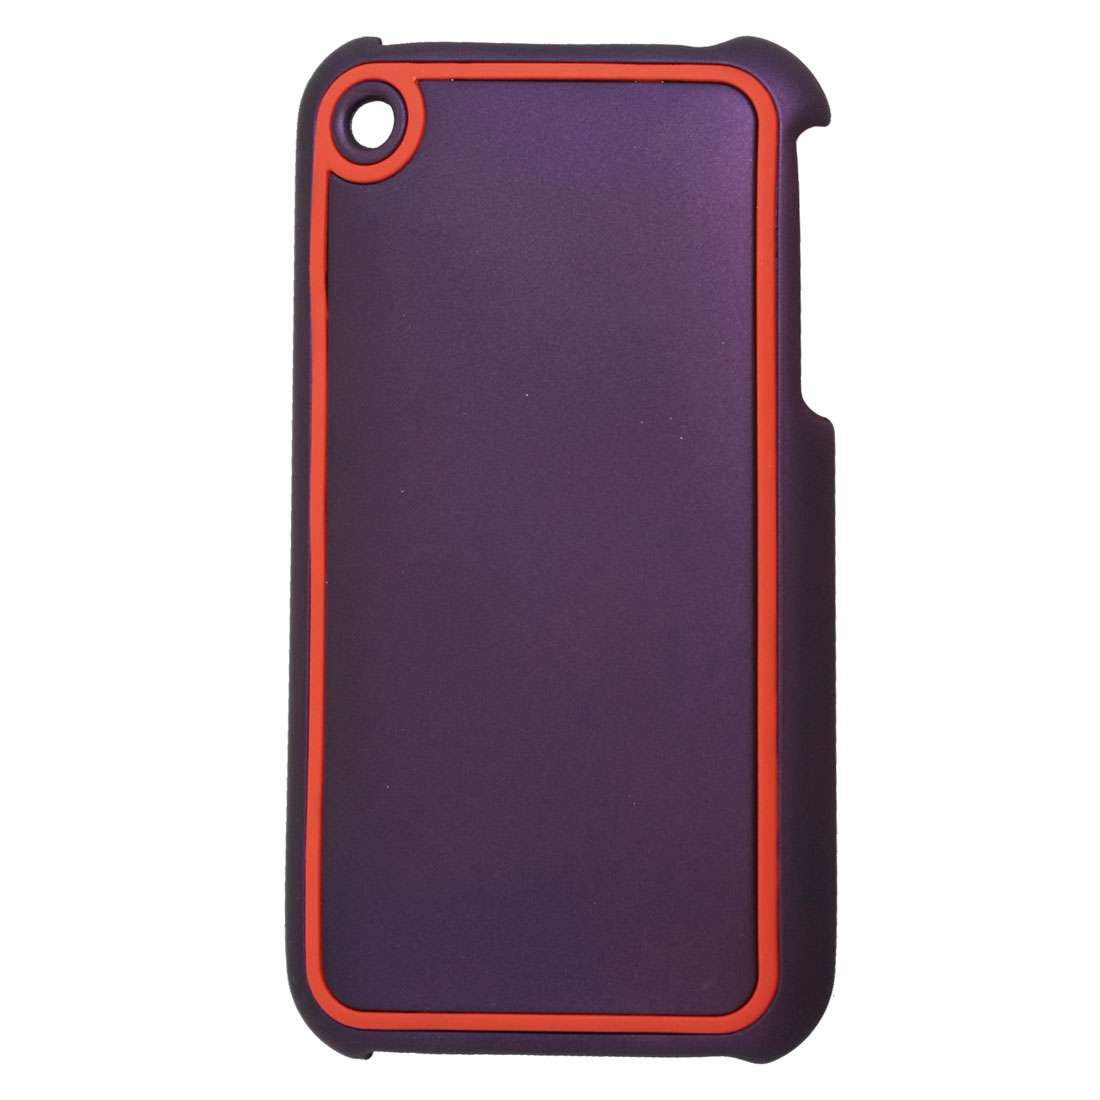 Smooth Hard Plastic Back Shell Purple Red for iPhone 3G 3GS